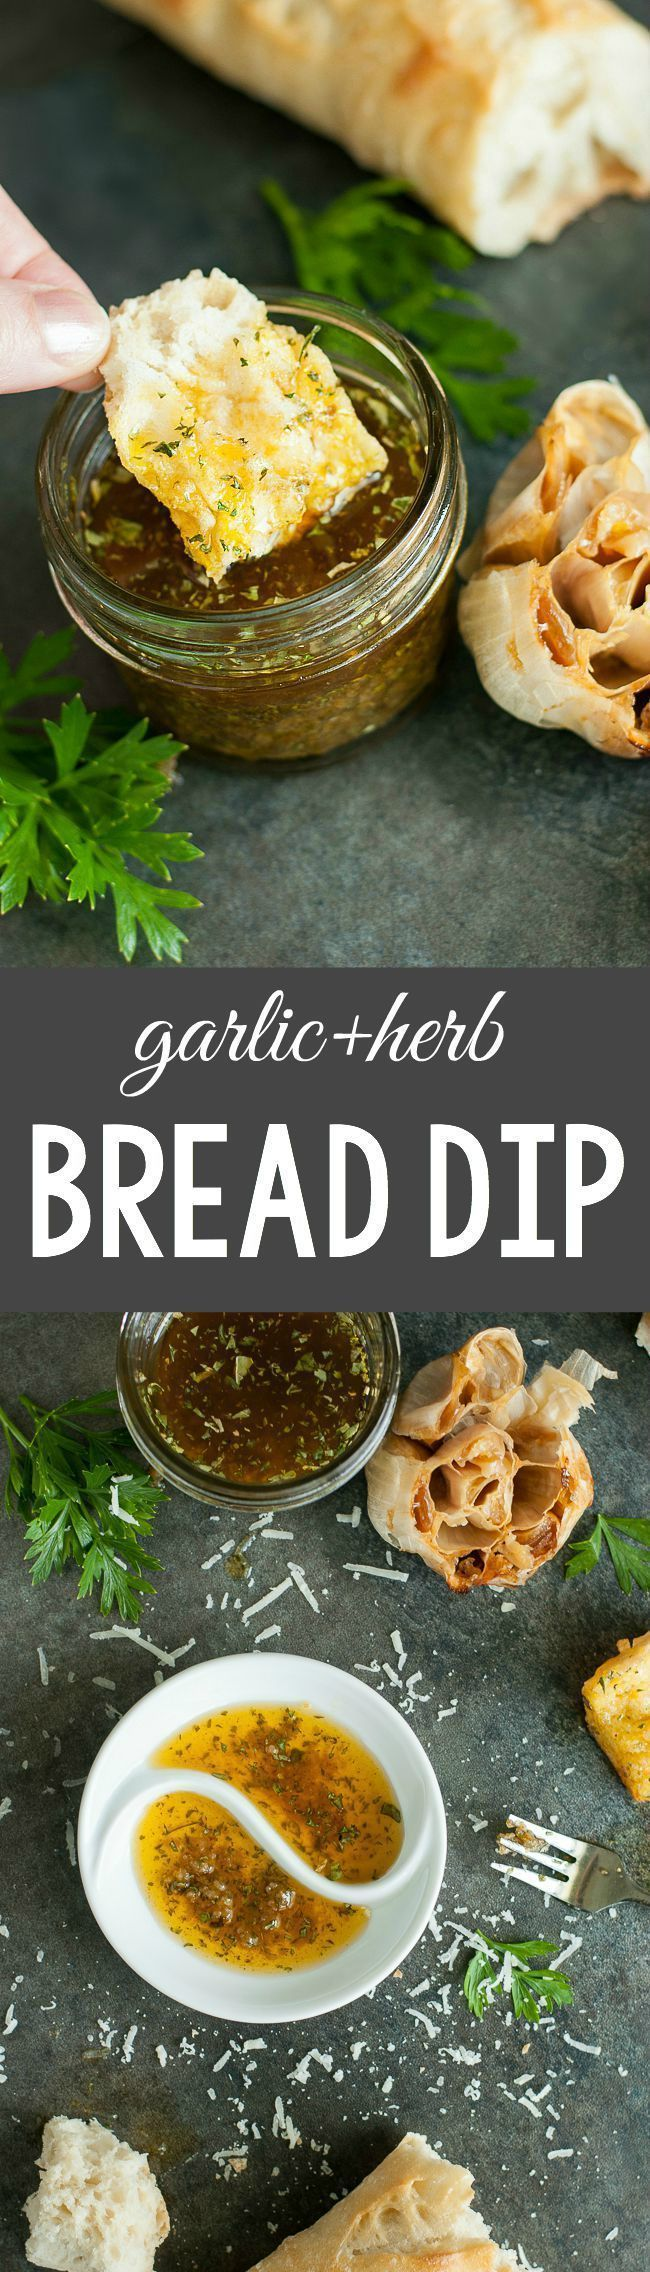 Just like your favorite Italian restaurant.. at home! This copycat olive oil garlic and herb bread dip will rock your socks and makes a perfect party appetizer for a crowd!